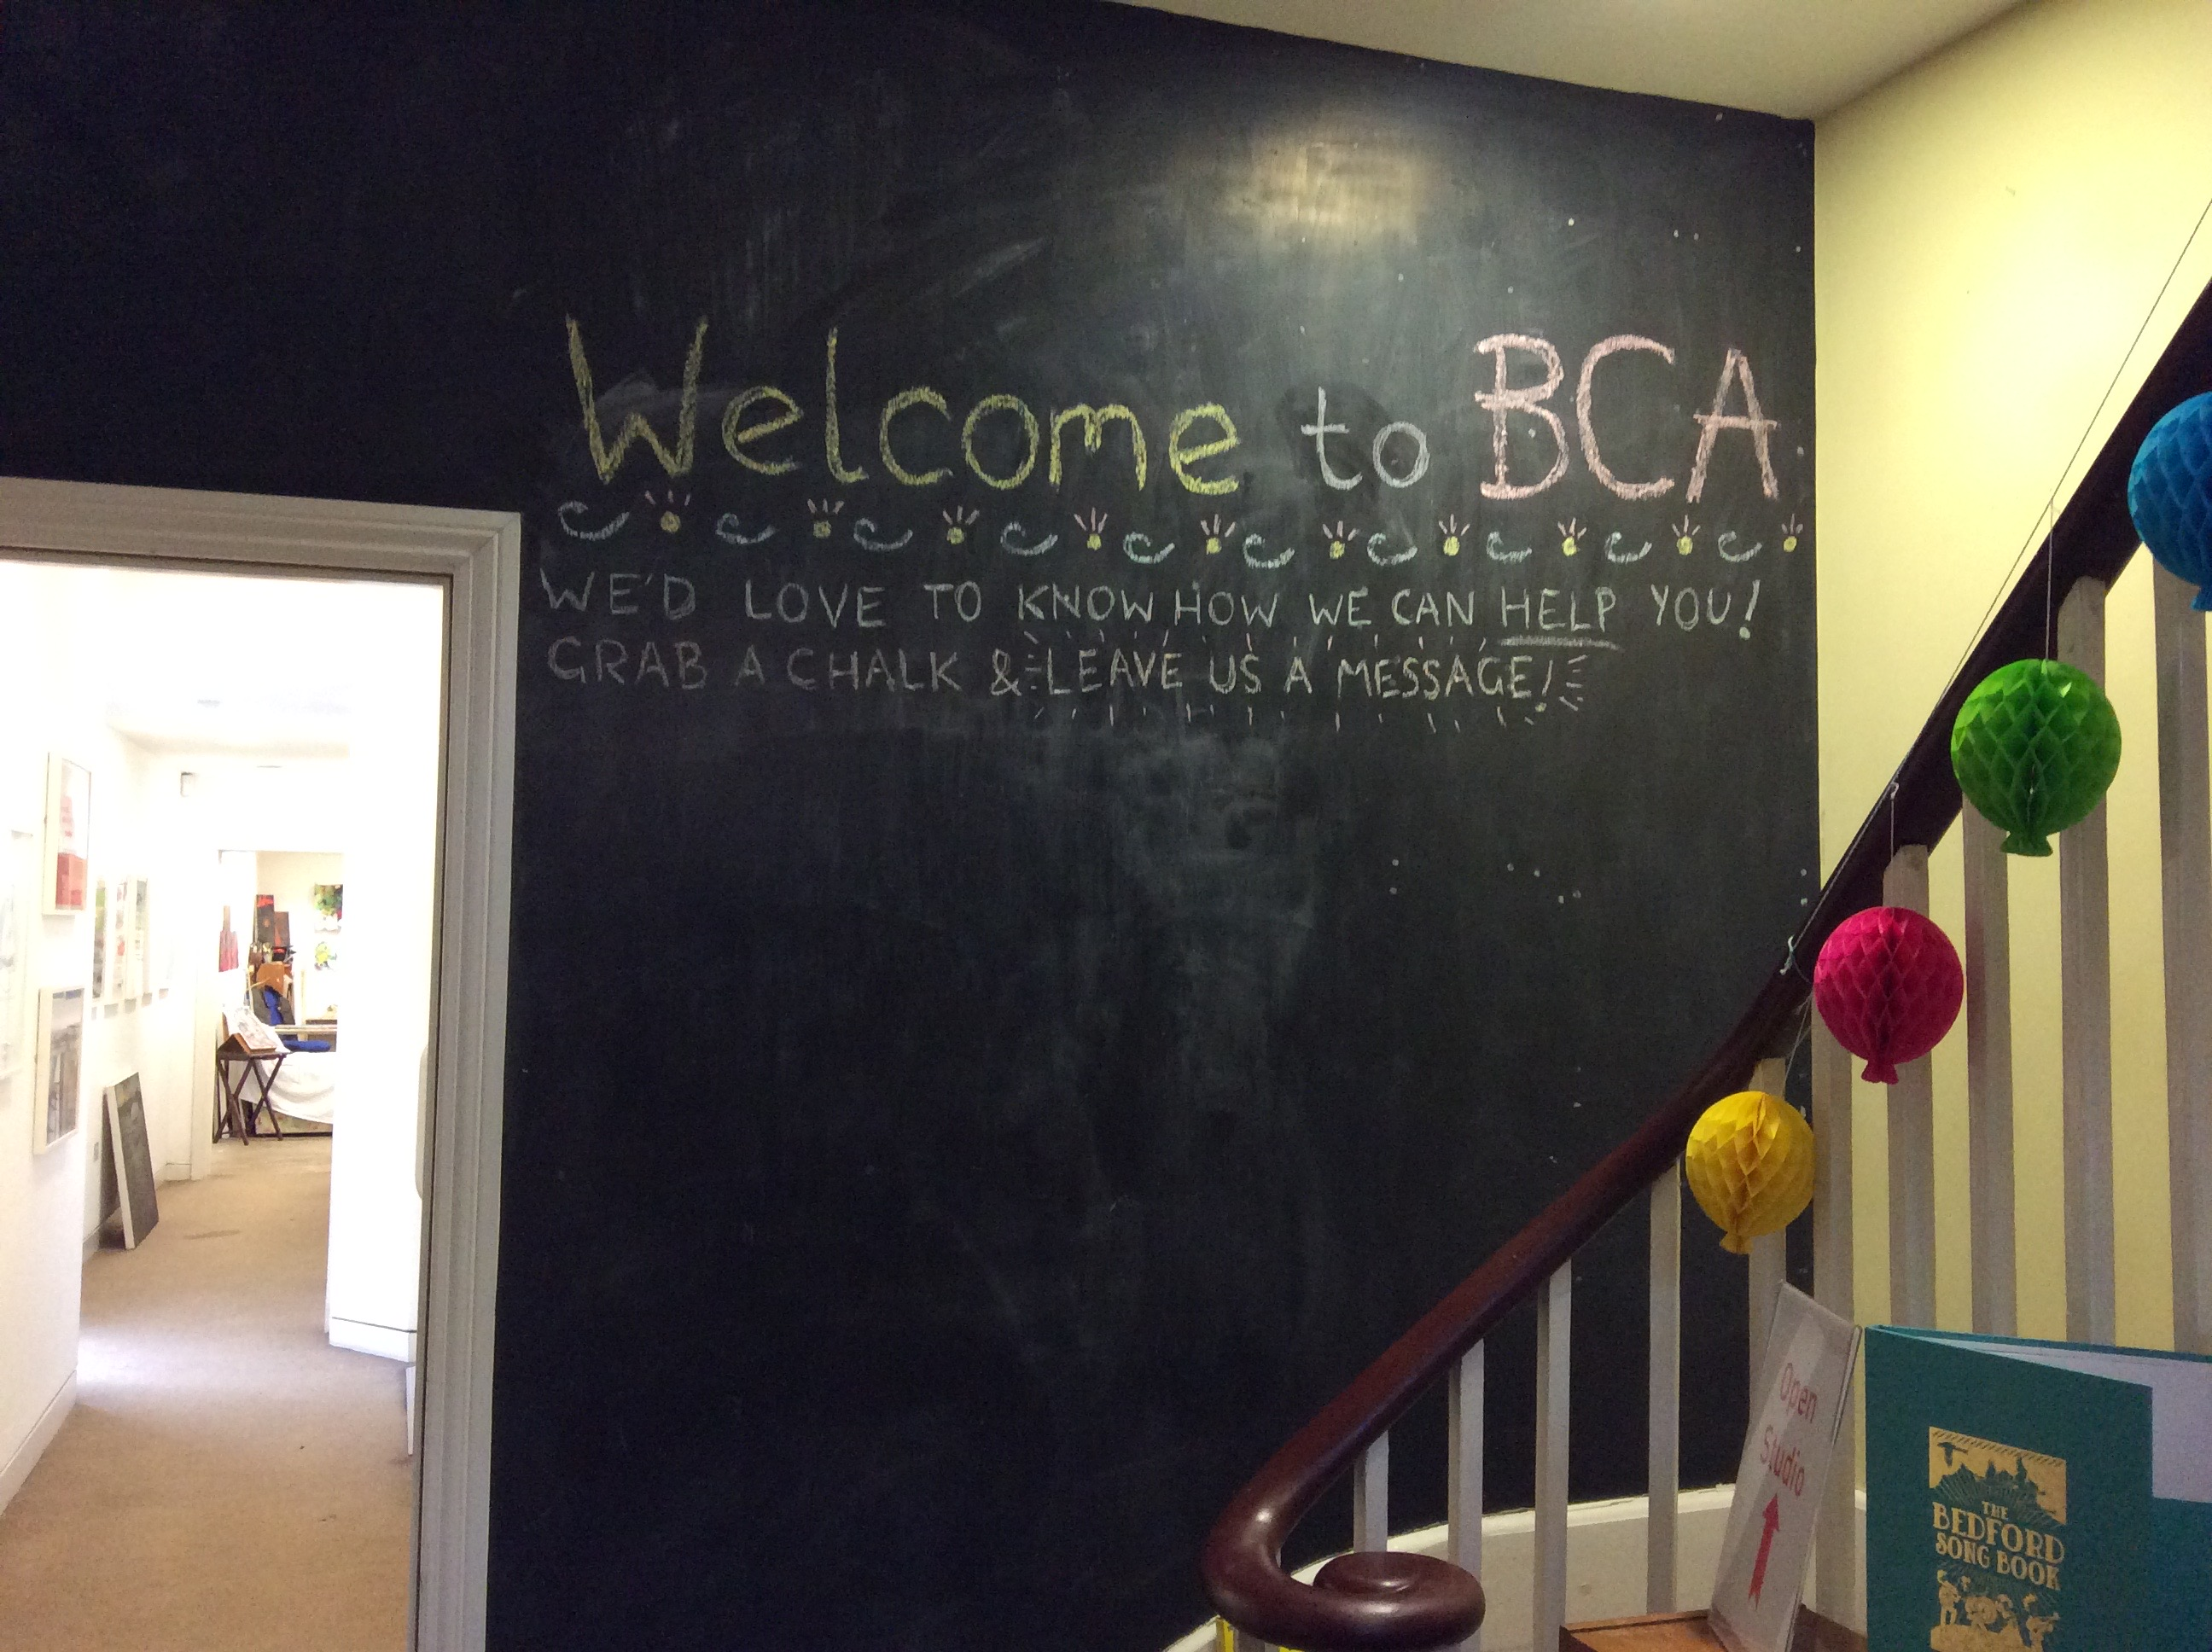 Welcome to BCA chalk wall for messages